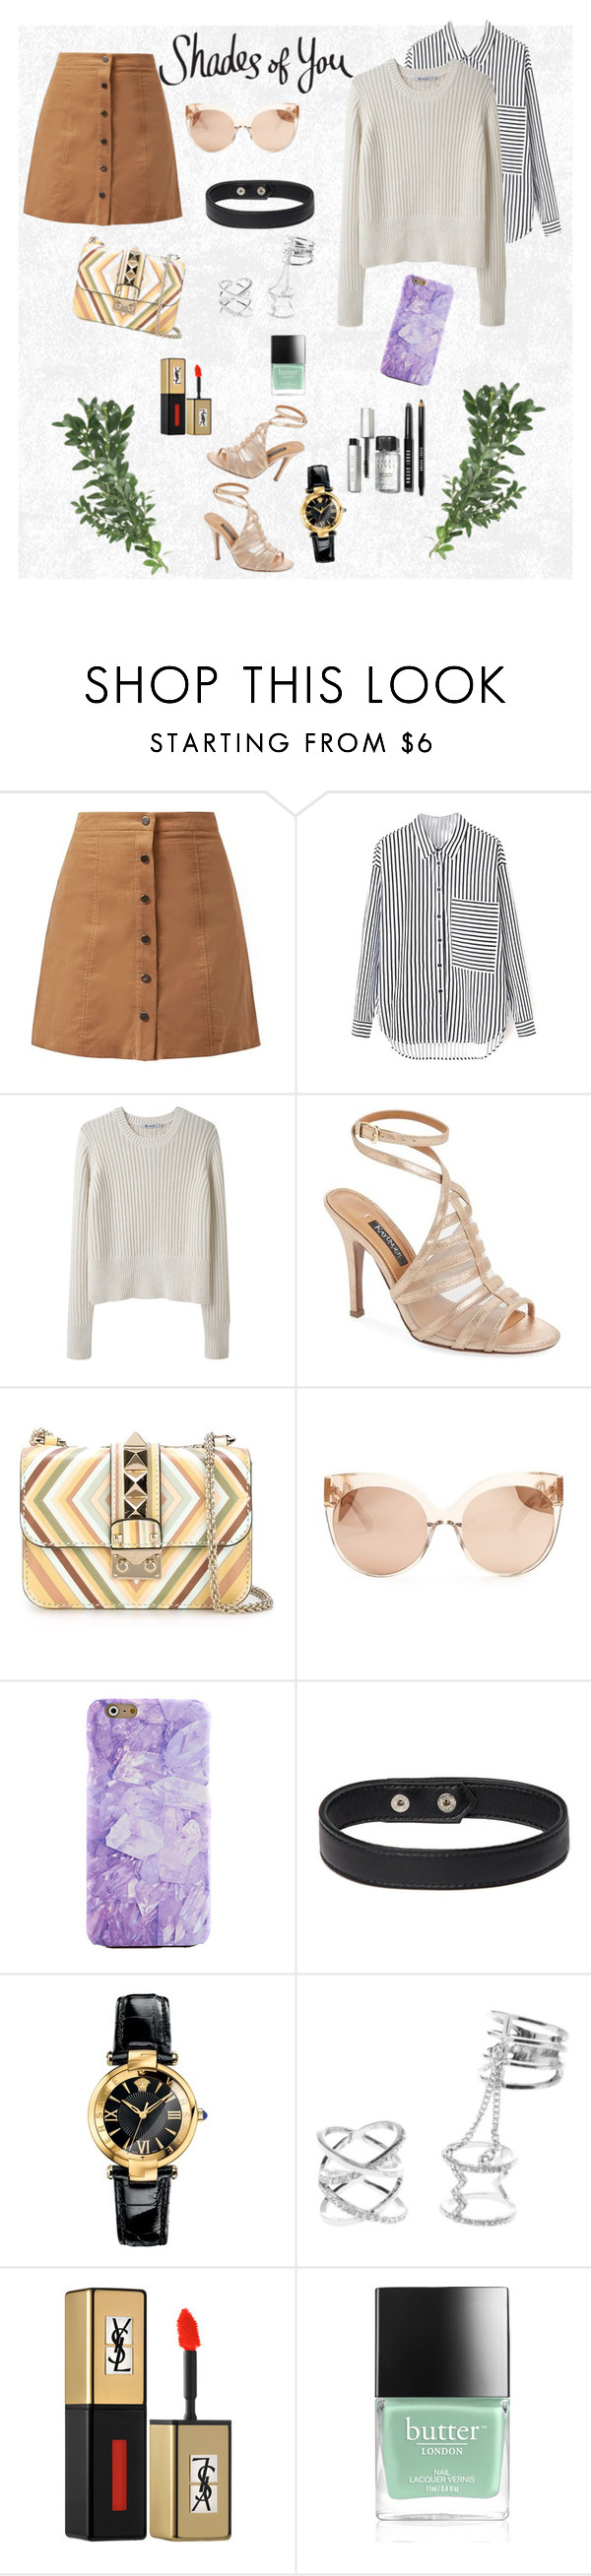 """""""Sem título #20"""" by lasiamon ❤ liked on Polyvore featuring T By Alexander Wang, Kay Unger New York, Valentino, Linda Farrow, Versace, Charlotte Russe, Yves Saint Laurent, Butter London and Bobbi Brown Cosmetics"""